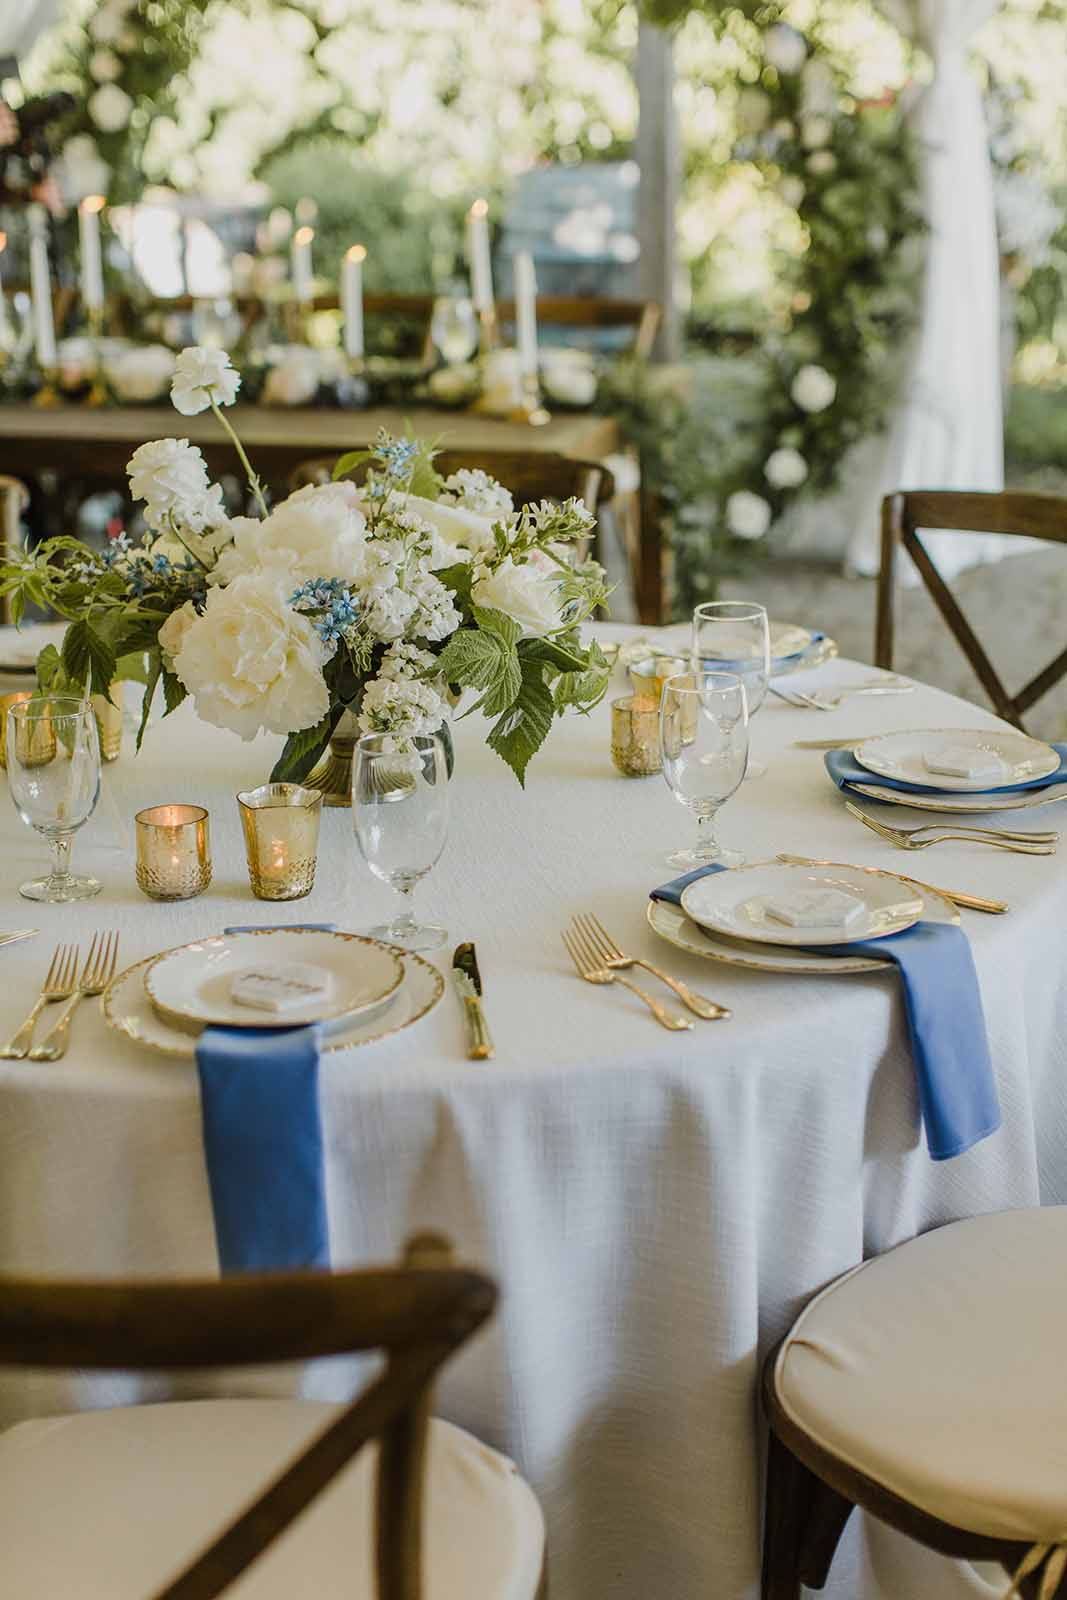 Cream and blue wedding reception table designed by Flora Nova, featuring gold compote arrangements.